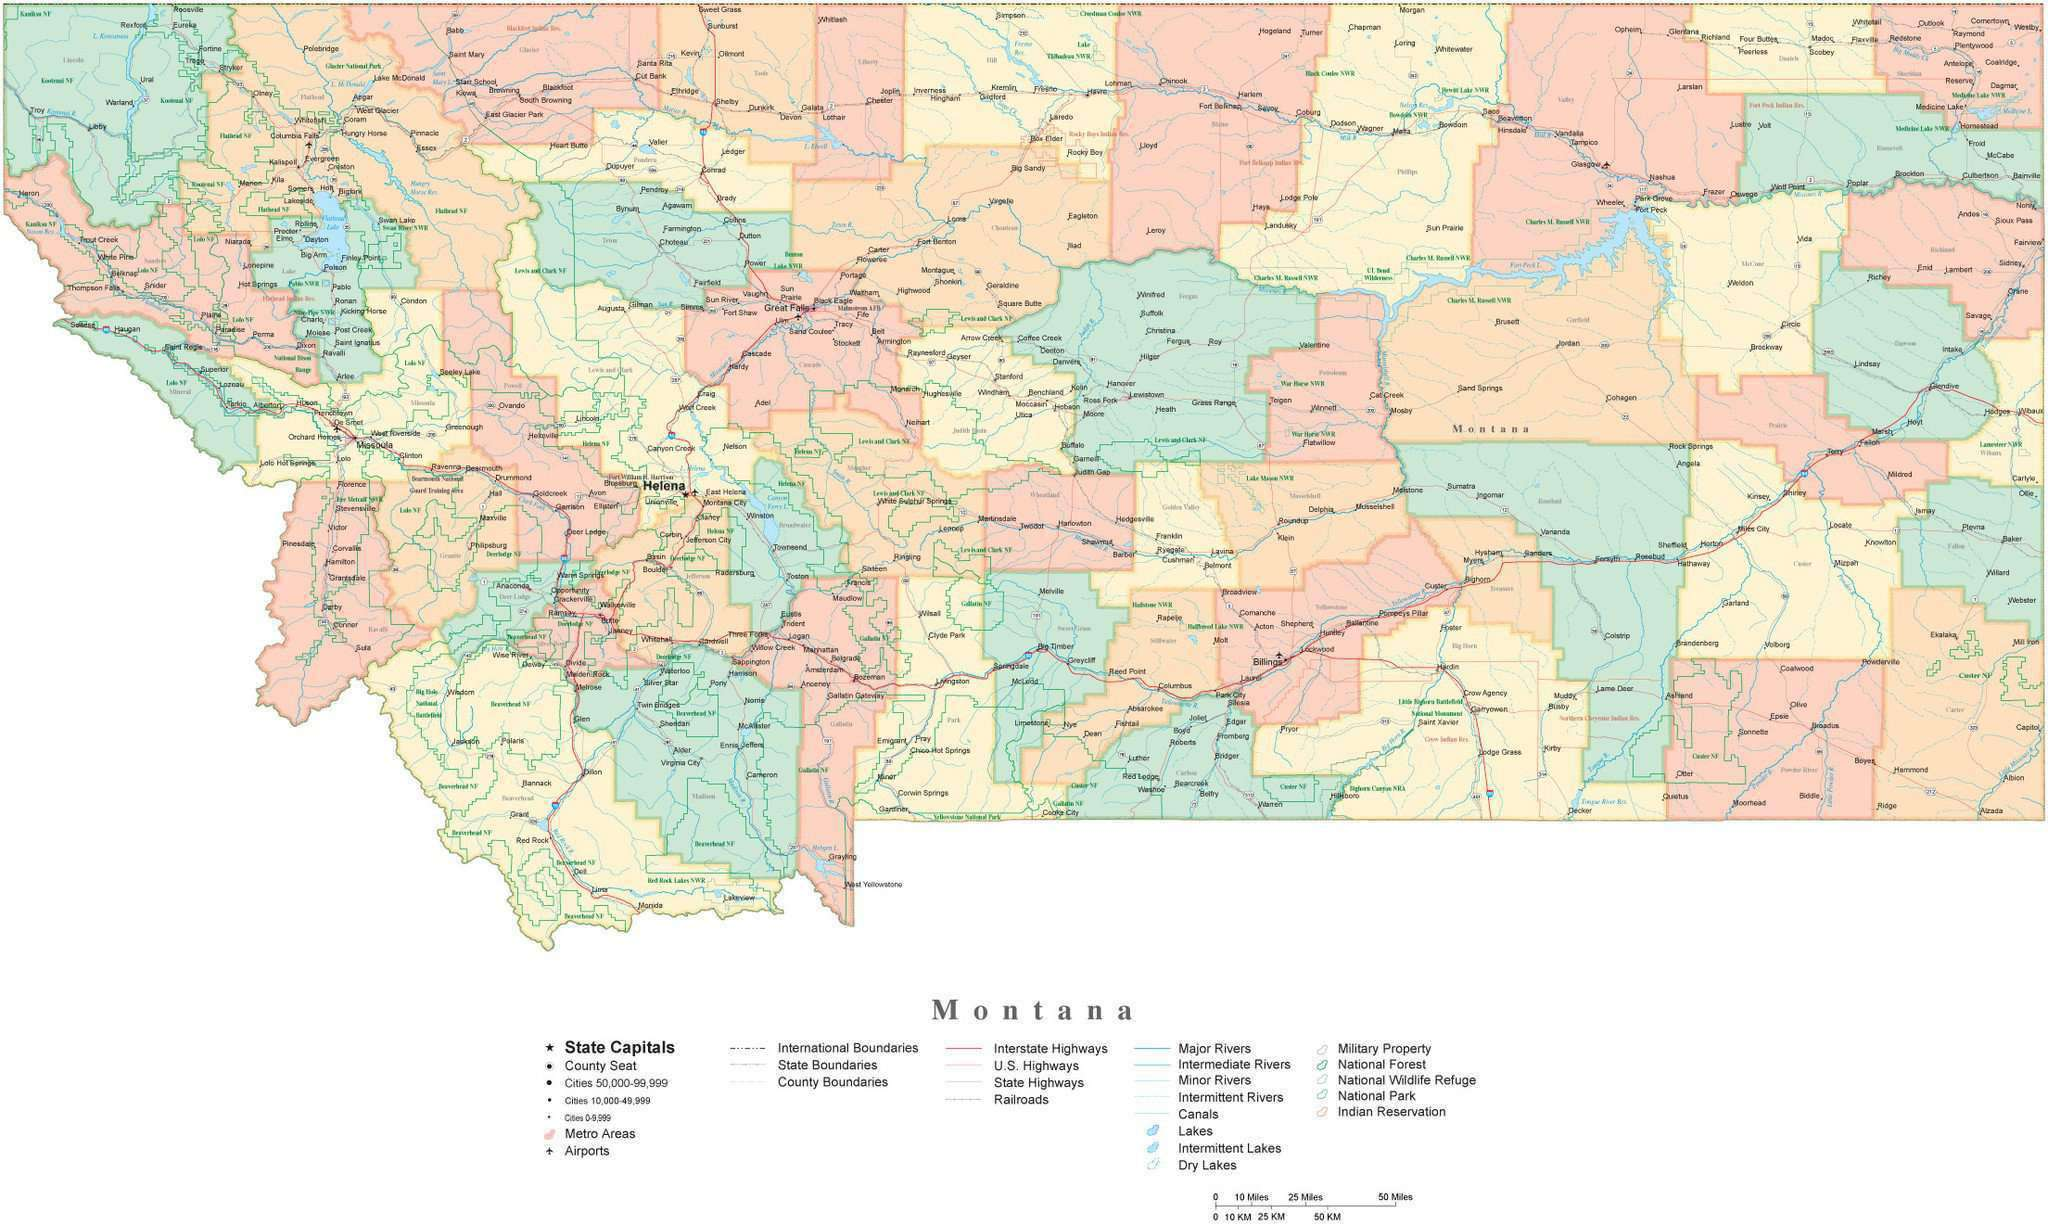 Dry County Wikipedia Dry County Wikipedia Live Map United States - Map of arizona cities and counties